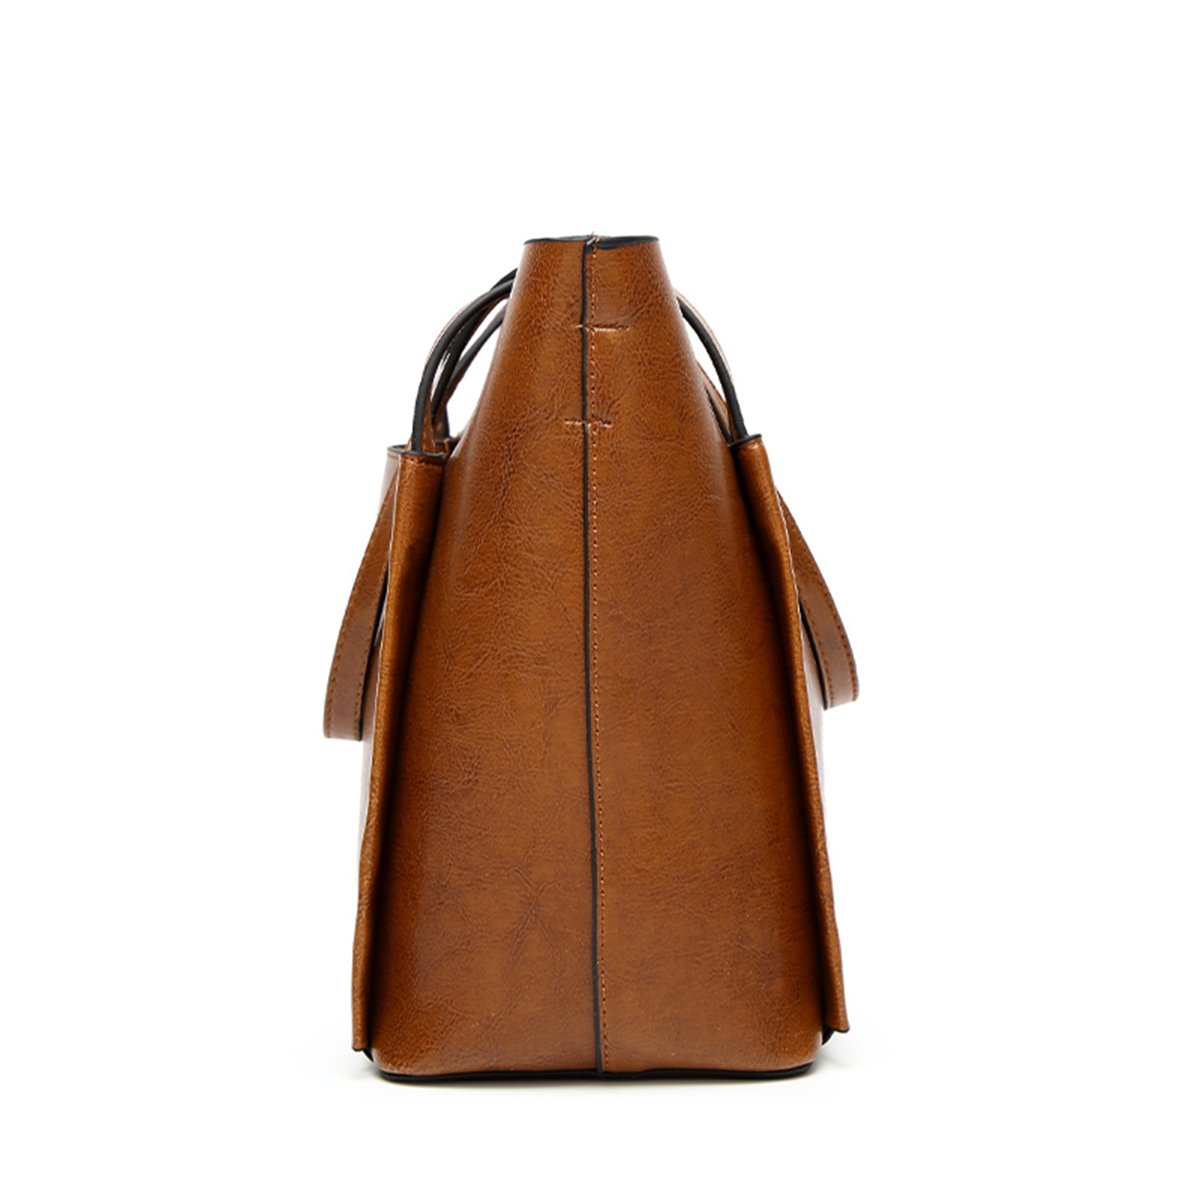 QIN LX Lady Leather Shopping Messenger Purse Top Handle Handbags Women's Shoulder Tote Satchel Bag (brown) by QIN LX (Image #3)